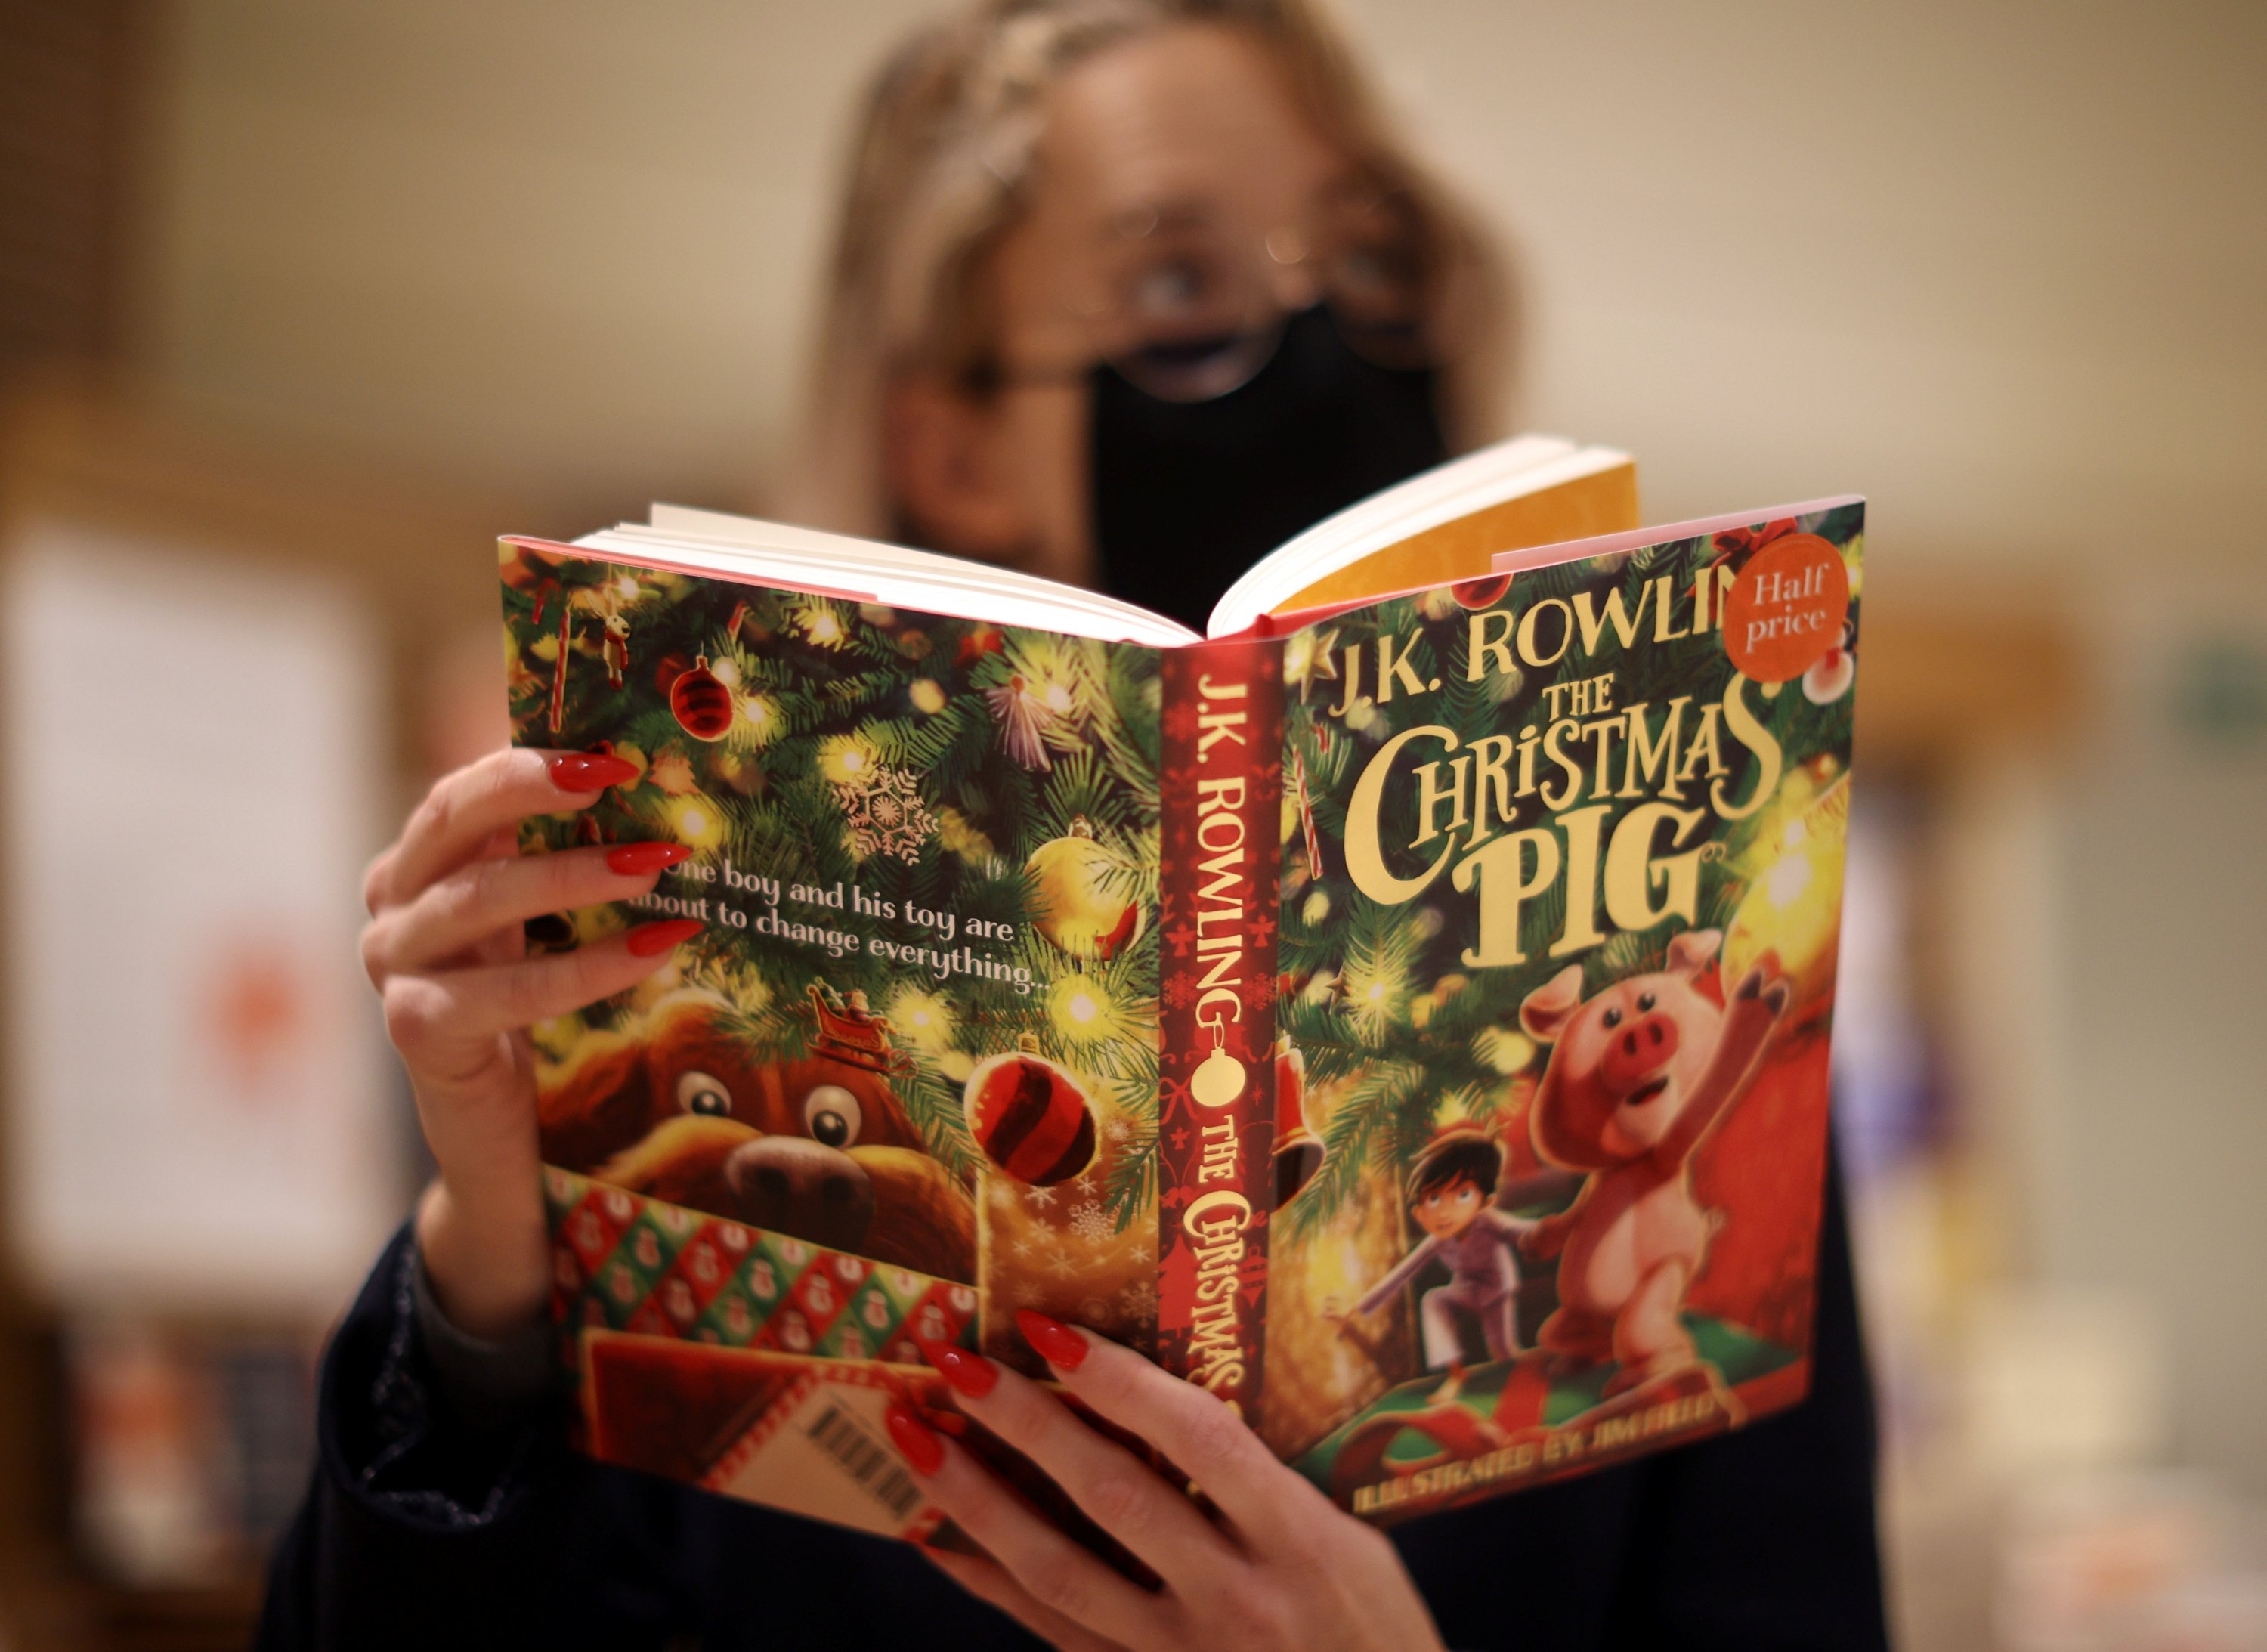 A shop worker poses with a copy of 'The Christmas Pig,' a children's book written by J. K. Rowling, at a Waterstones store in London, England, Oct. 12, 2021. (REUTERS Photo)